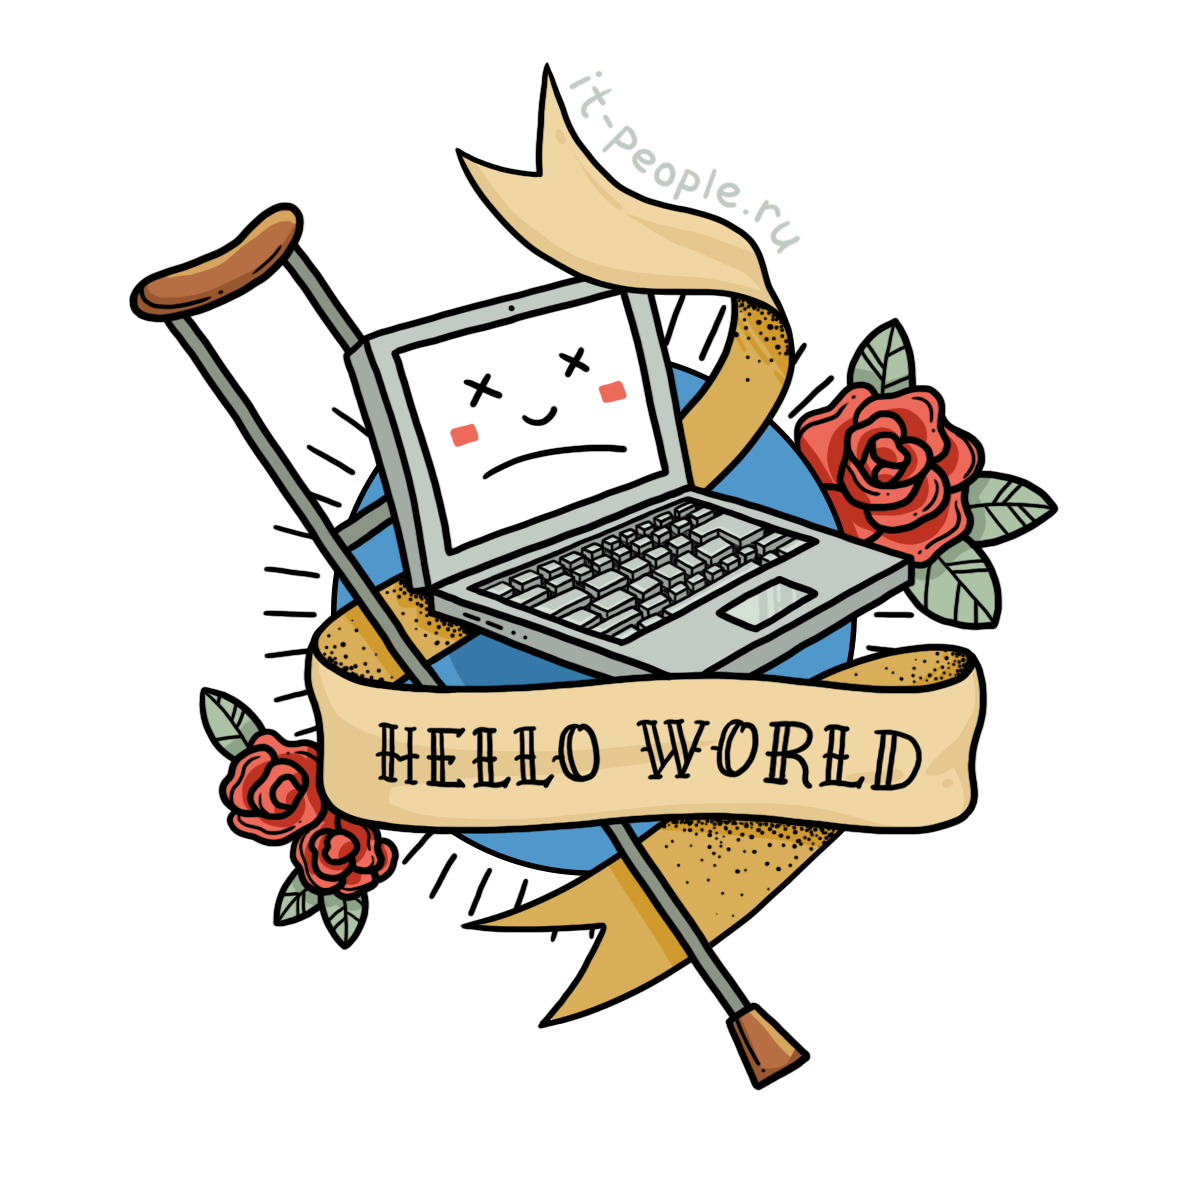 geeks,Fortran,IT,conference,stickers,helloworld,sloth,programmer